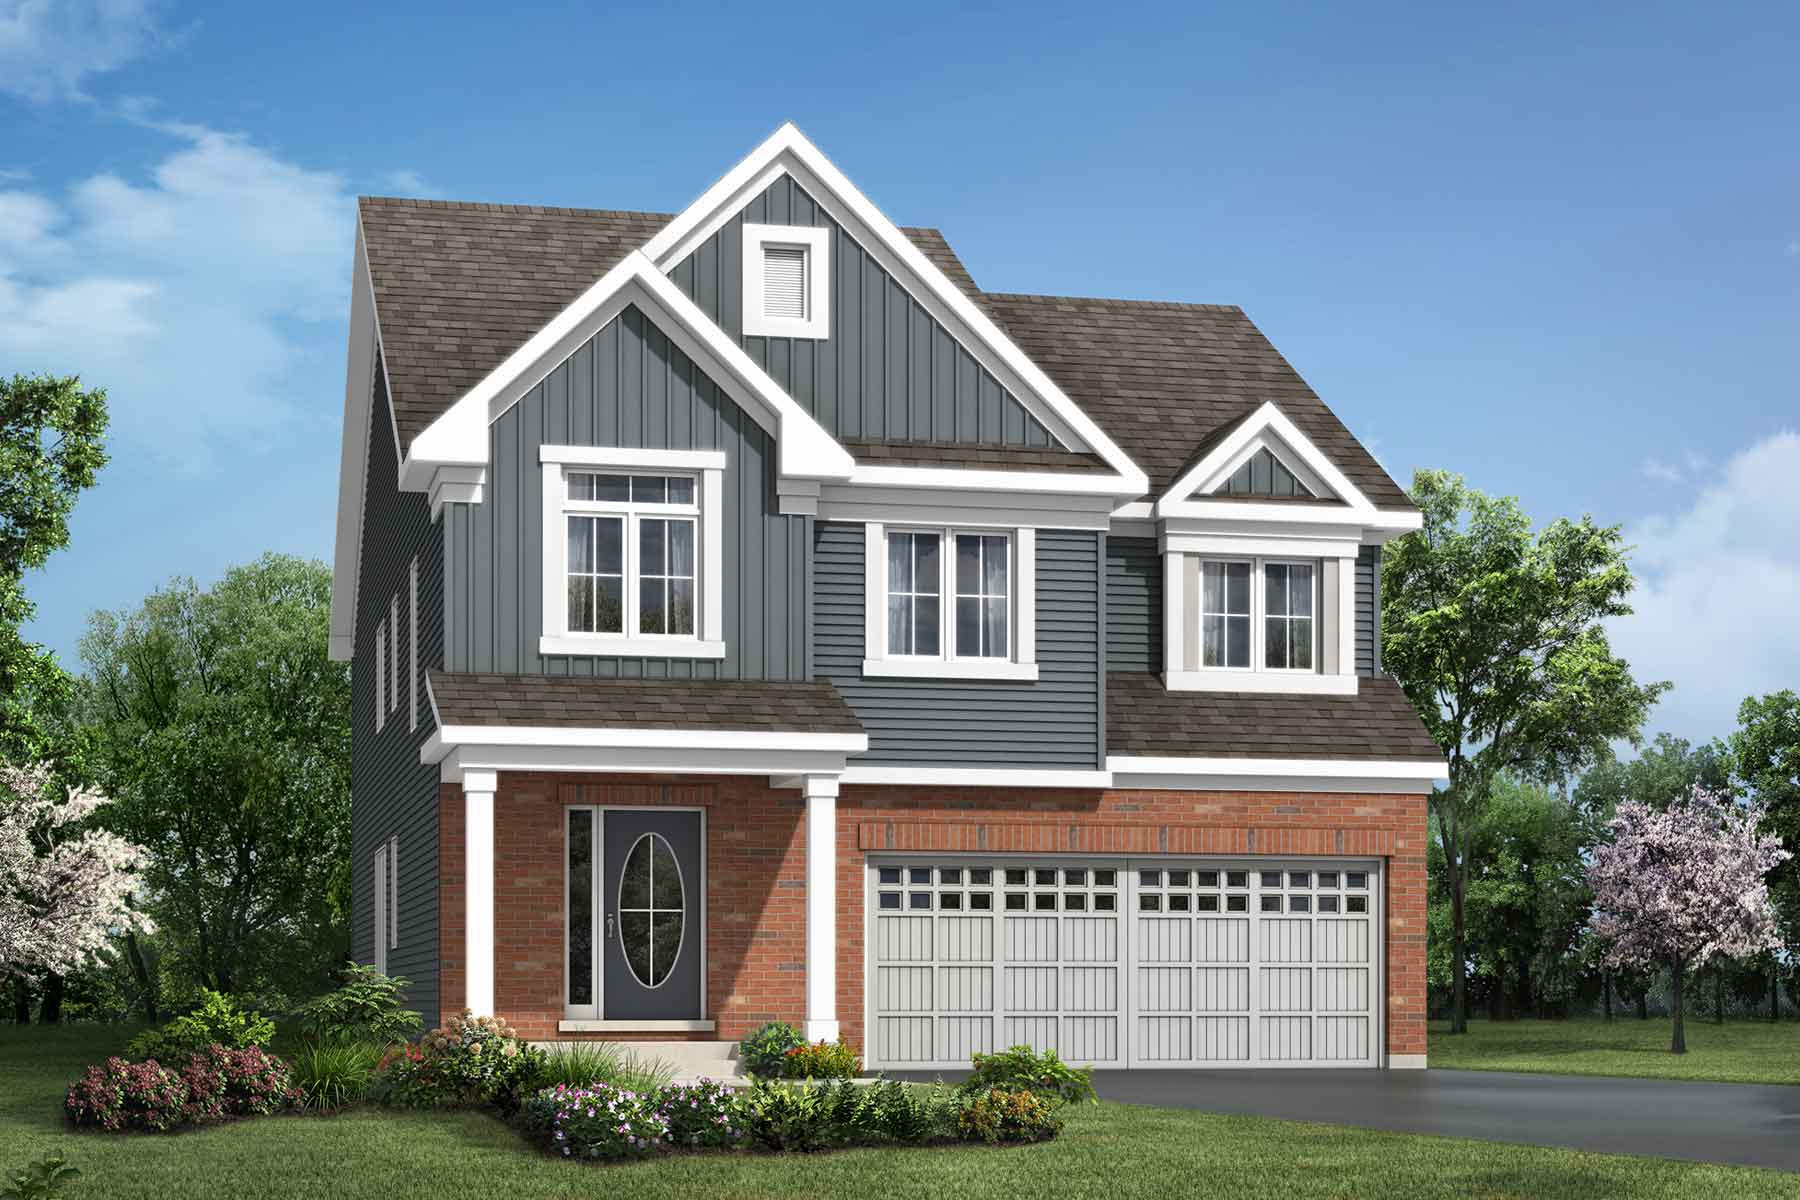 Valleyfield Plan Elevation Front at Connections In Kanata in Kanata Ontario by Mattamy Homes